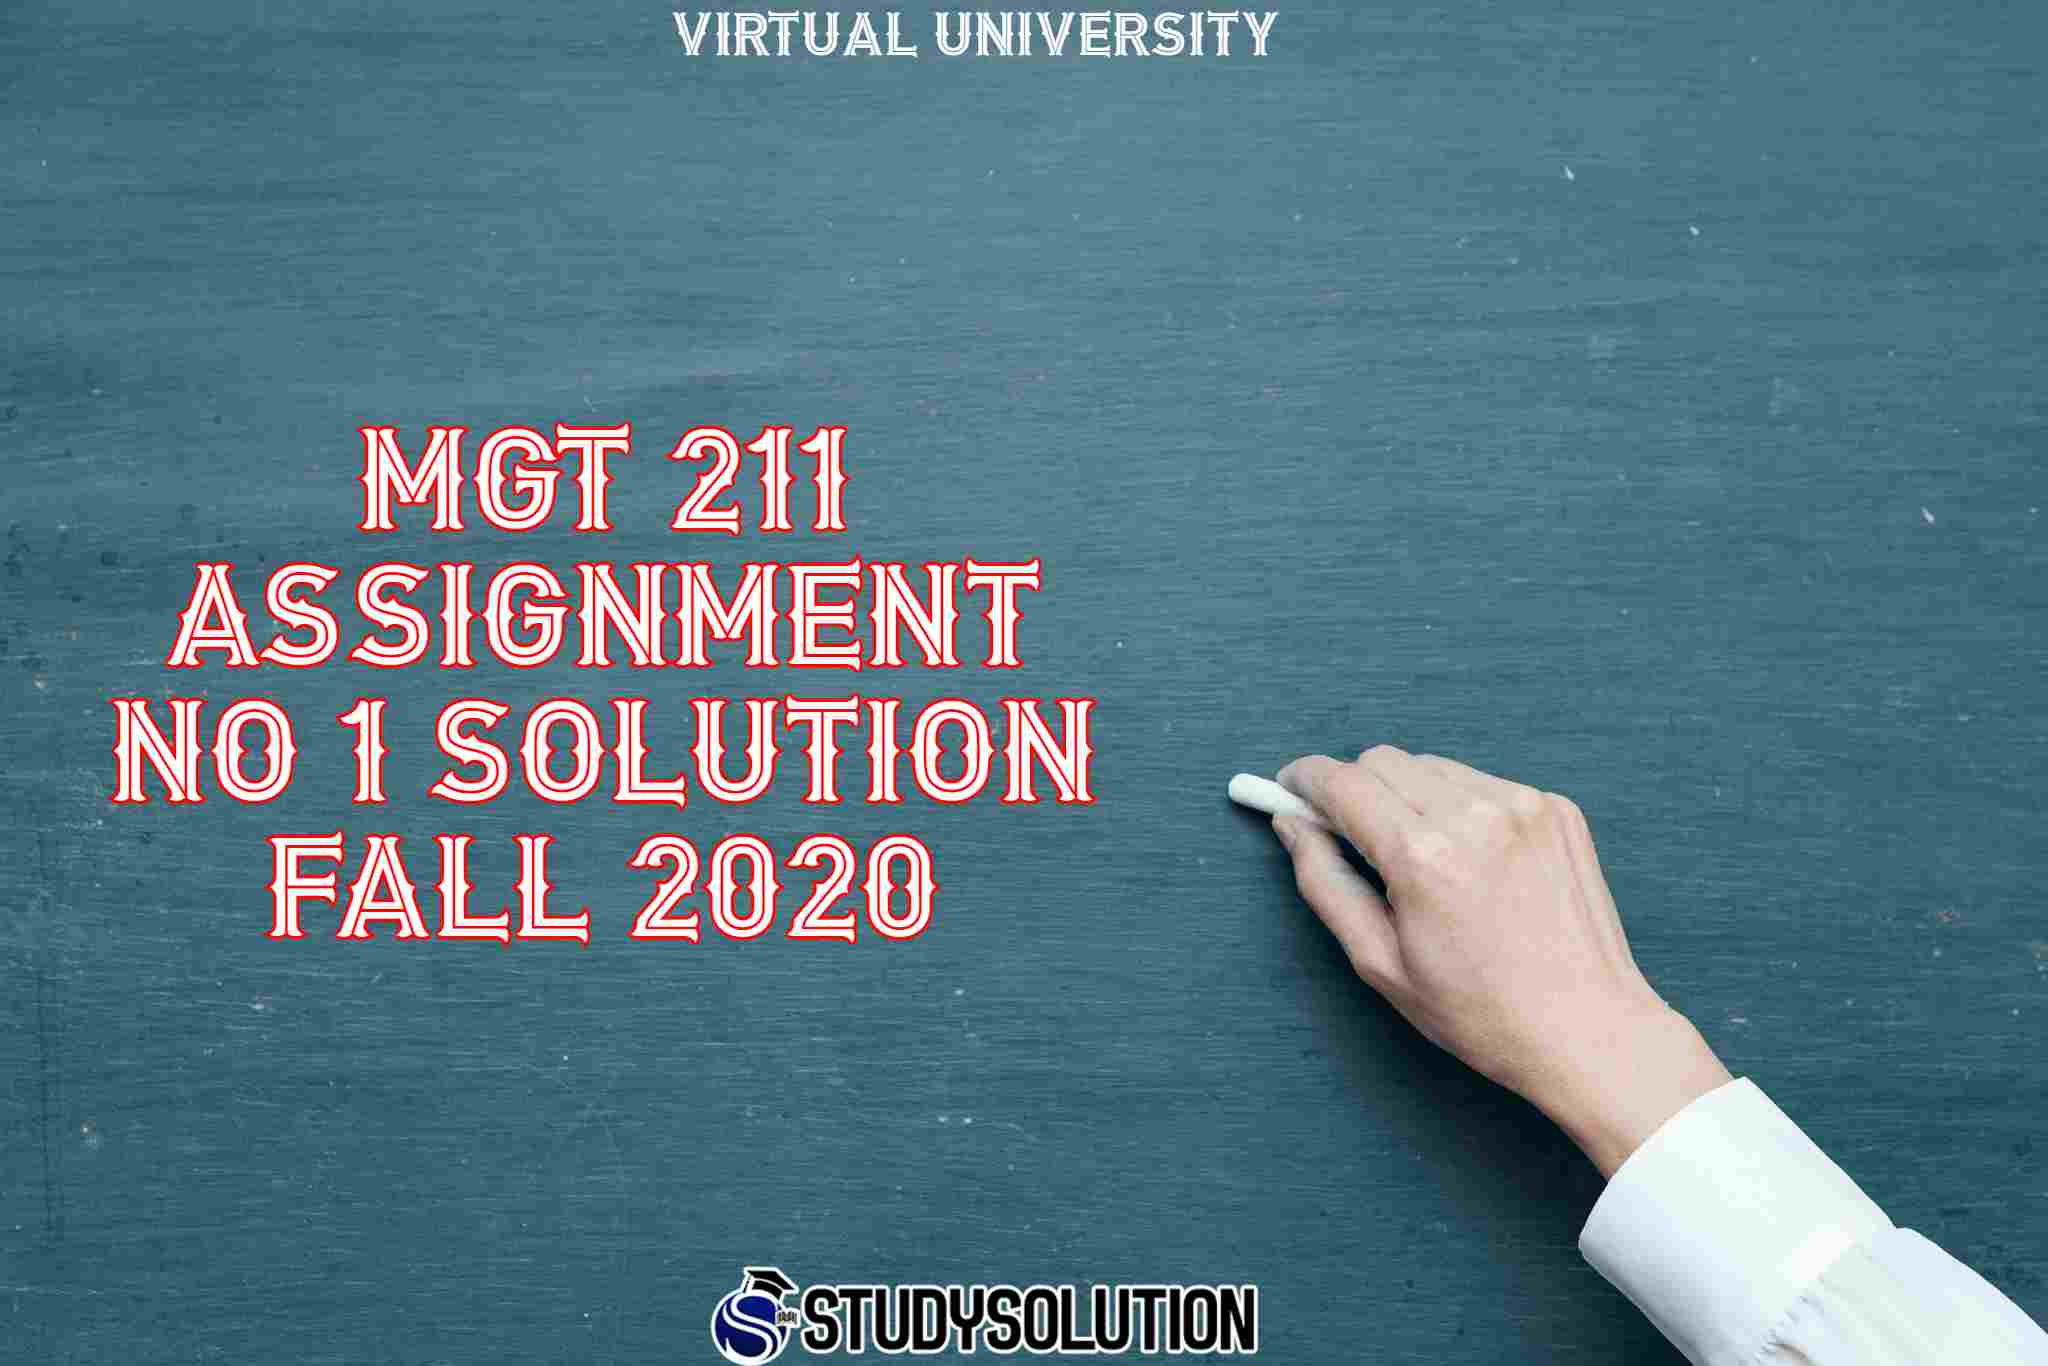 MGT 211 Assignment No 1 Solution Fall 2020